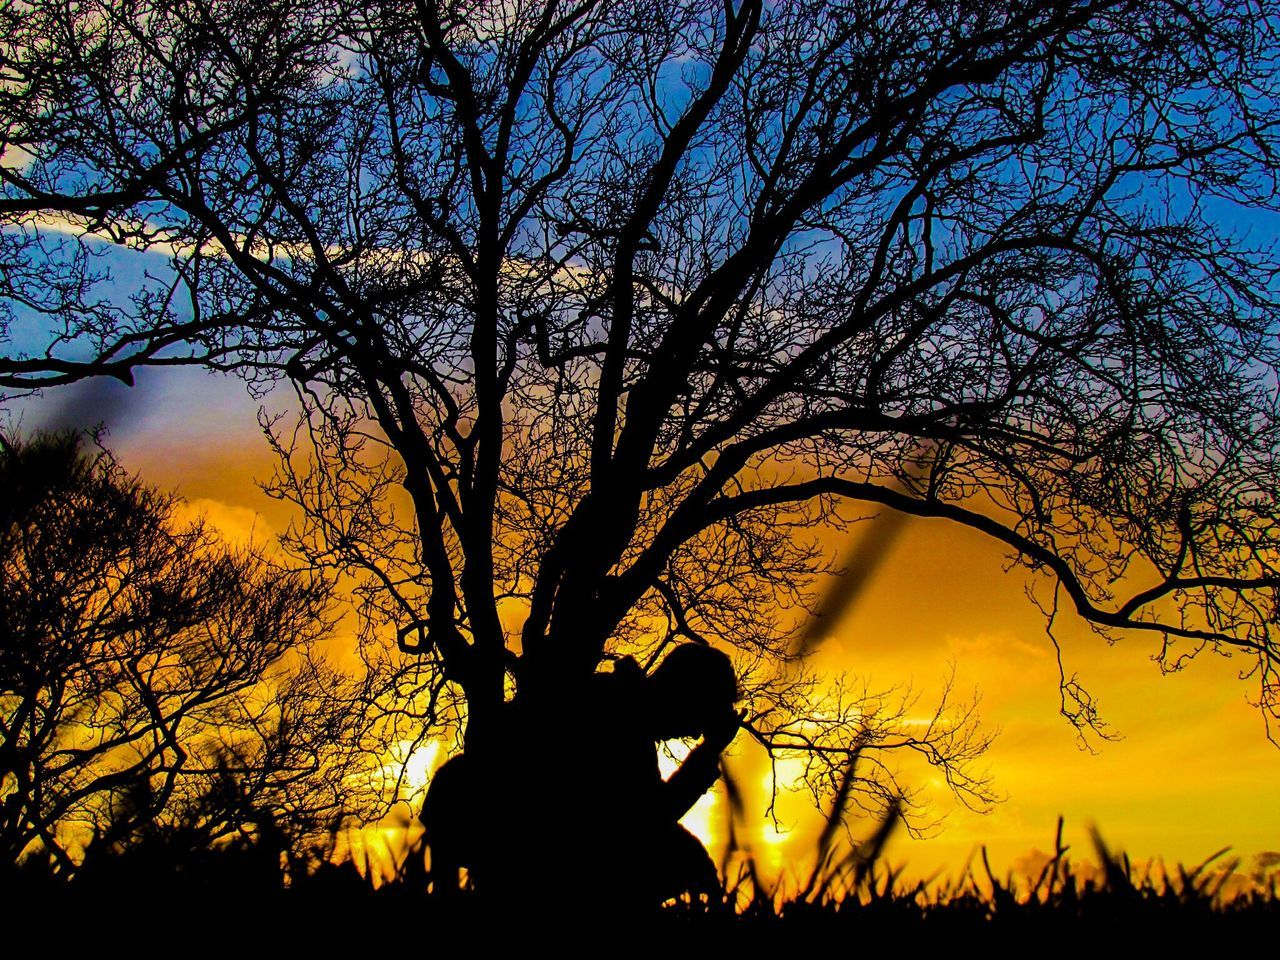 Tree Sunset Nature Beauty In Nature One Person London Life Mypic Londoncity Viewpoint Sunset_collection Sunset Silhouettes Sunsets Sunsetlover Sunset_captures Sunset✨trees✨ LONDON❤ London Stay Strong Sky Colours Tree People Nature Sunset Lovers Sunset Collection